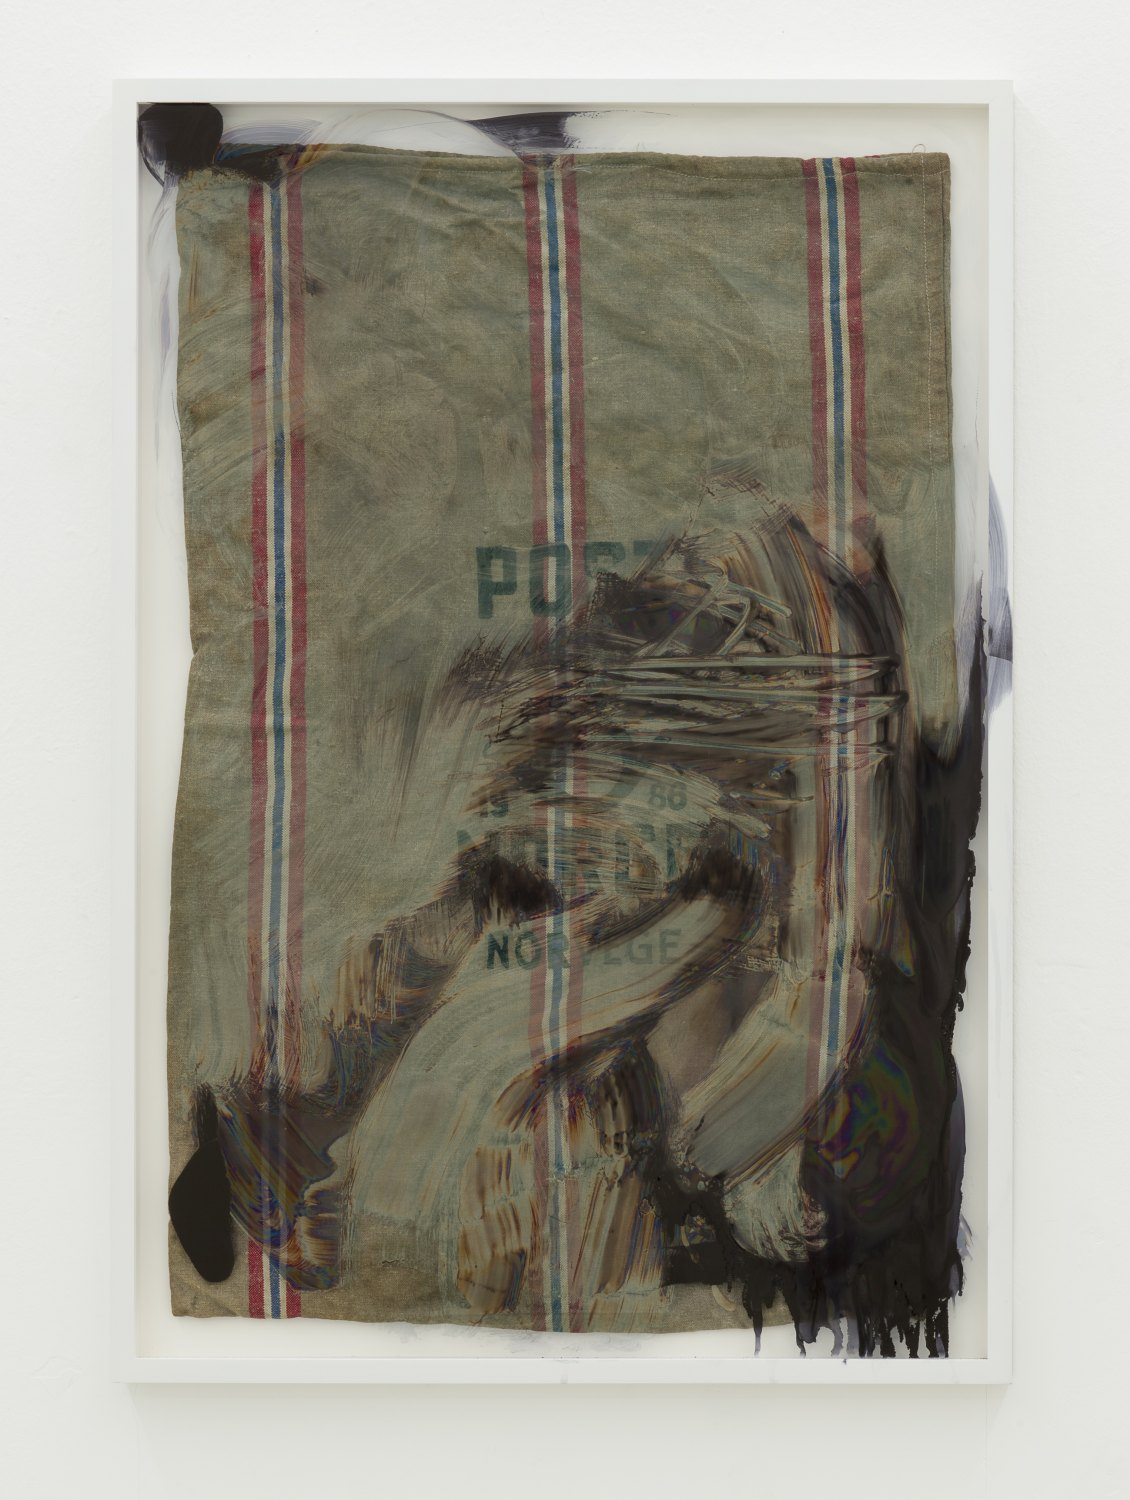 Matias Faldbakken Untitled (post bag), 2013 Canvas, frame, paint, 106.8 × 73.6 cm